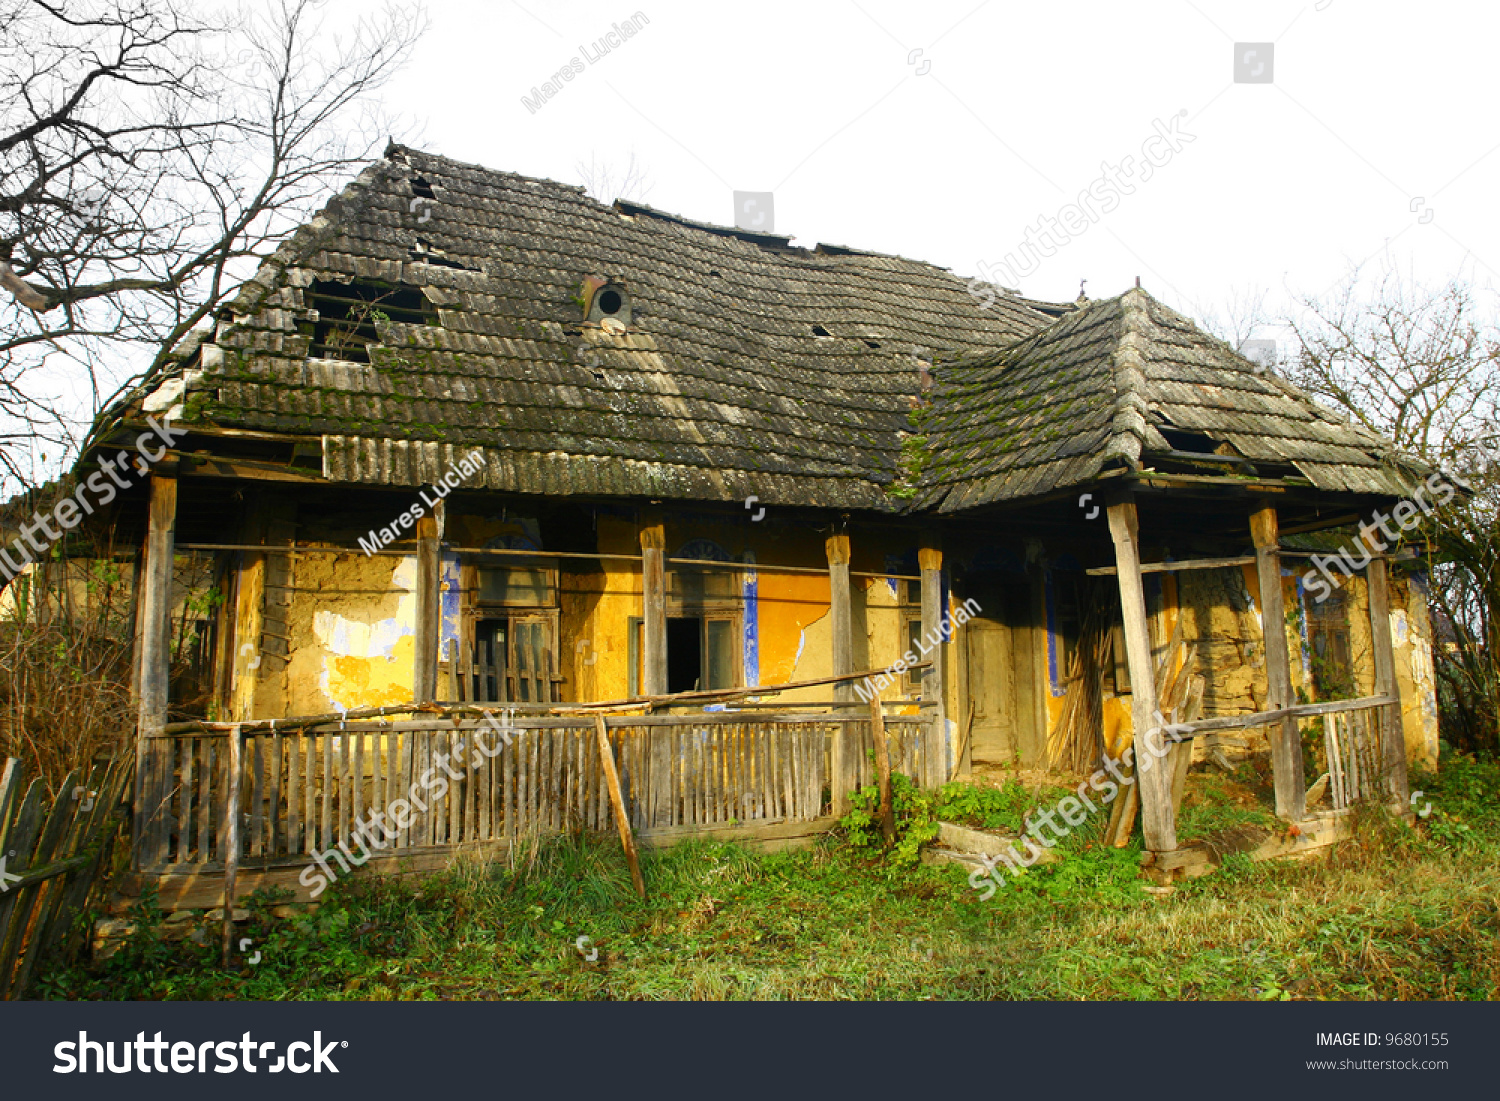 Old Country House Stock Photo 9680155 Shutterstock